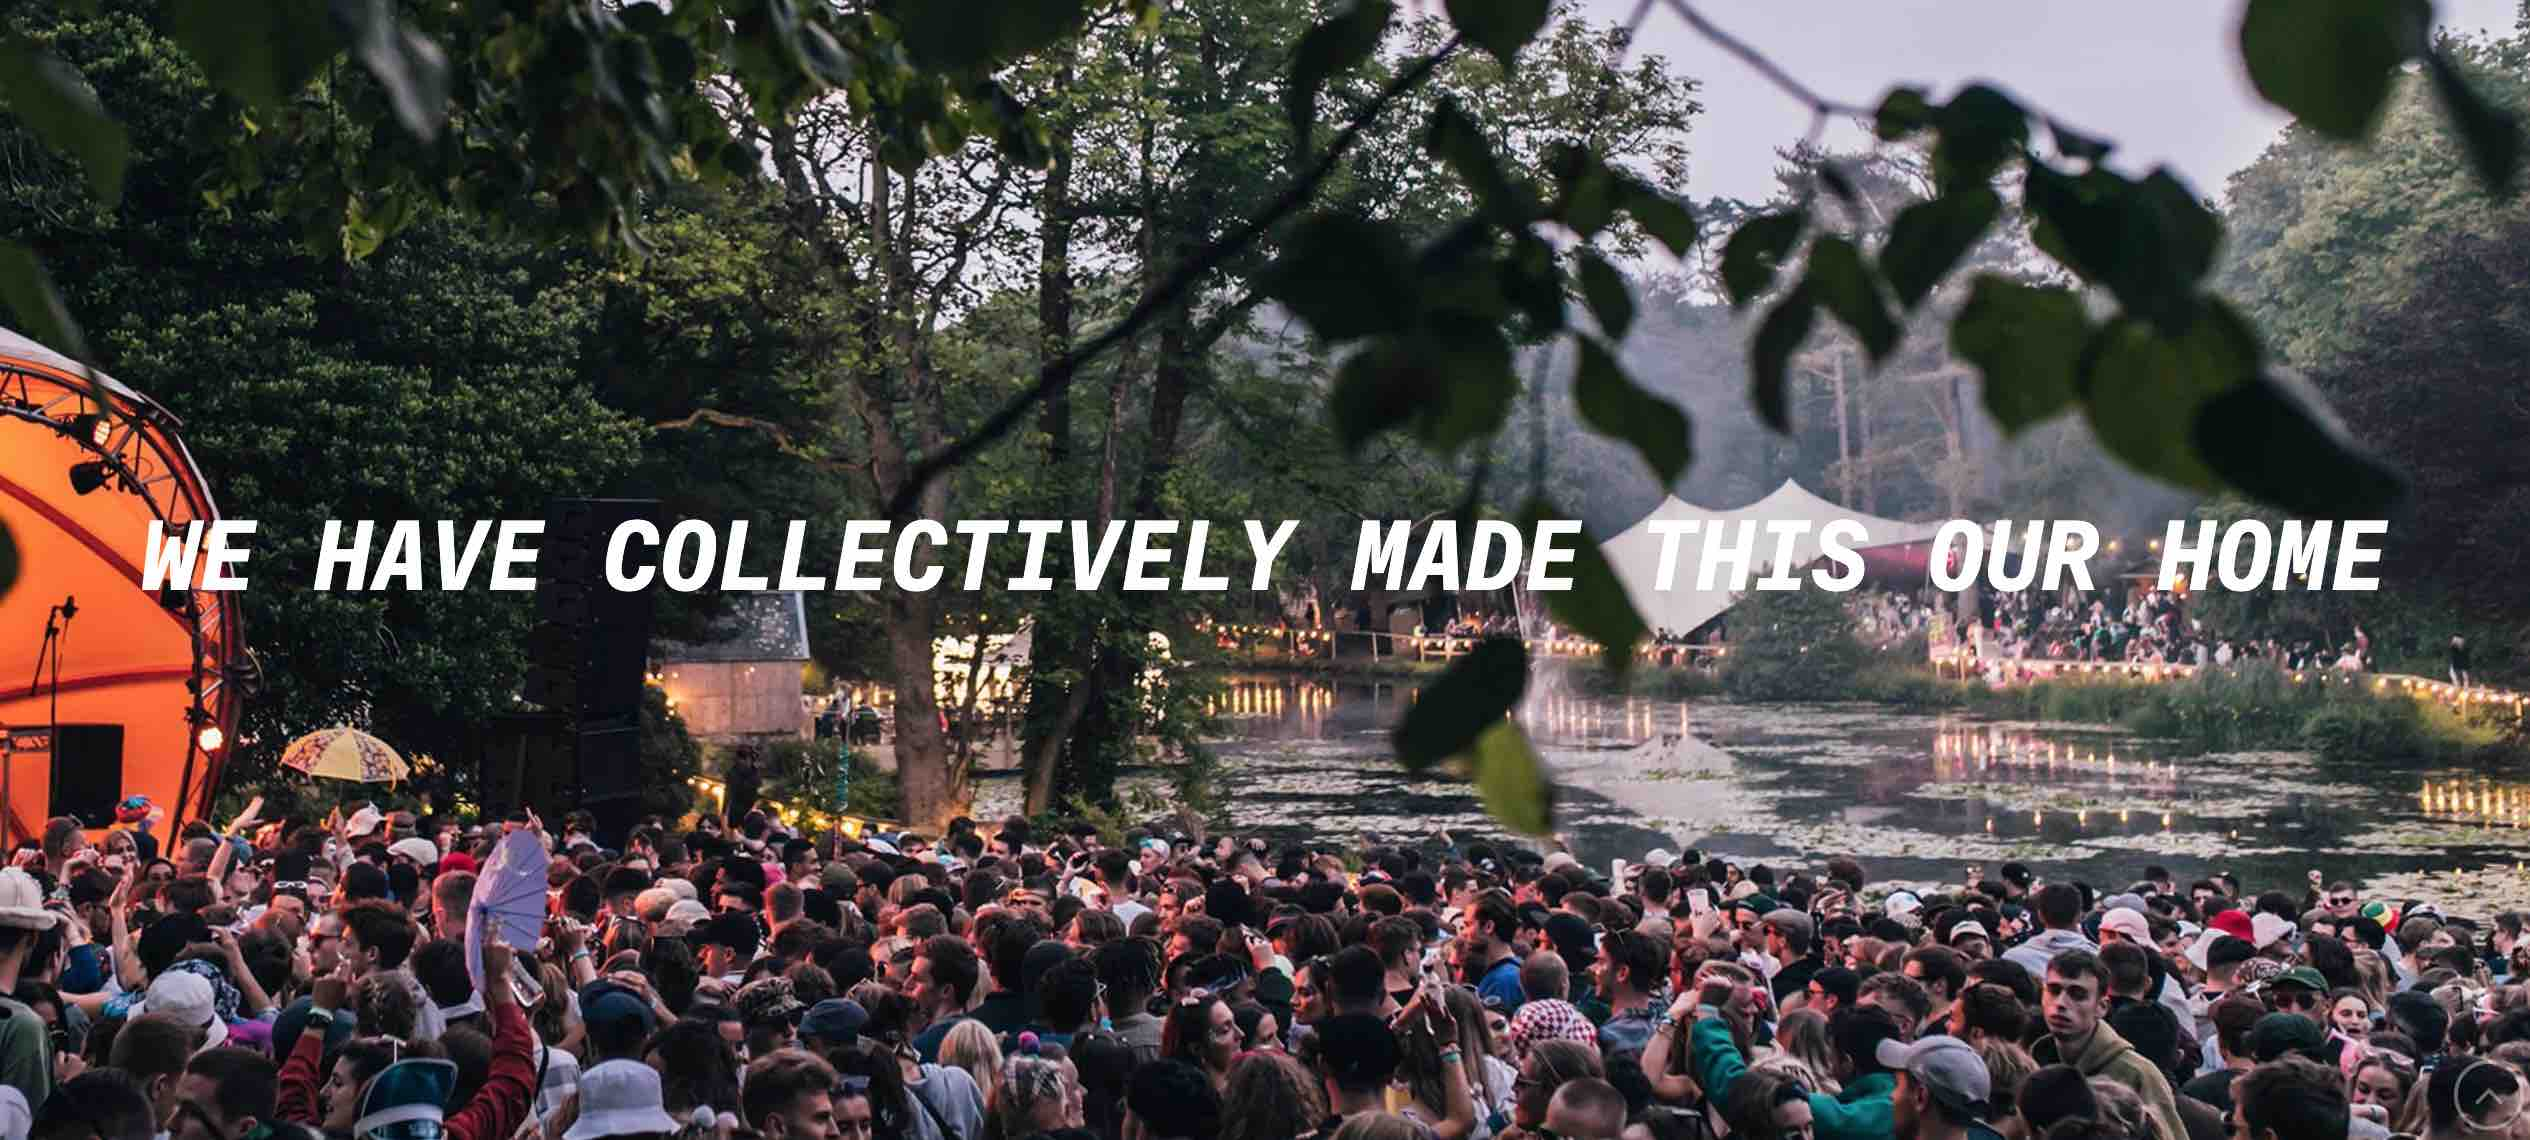 Best Upcoming Uk Music Festivals - Gottwood Festival 2020